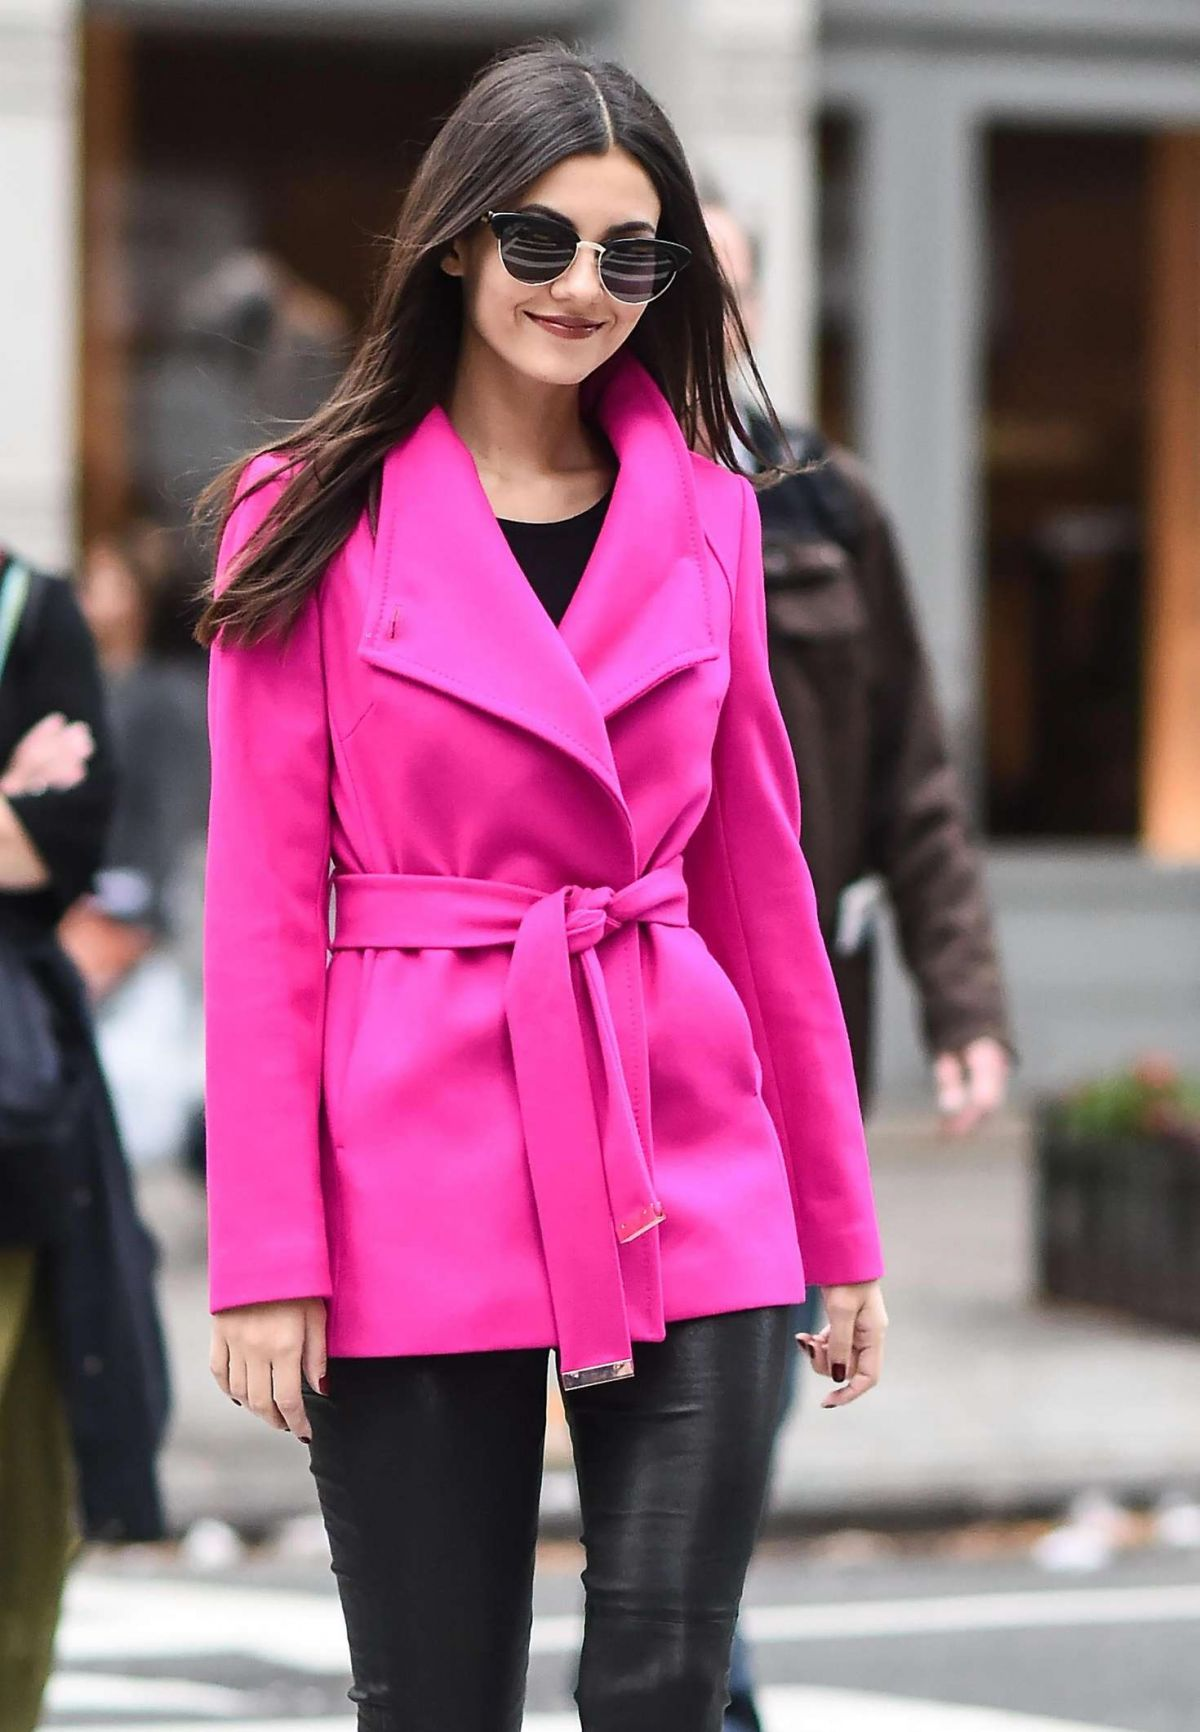 VICTORIA JUSTICE Out and About in New York 11/04/2016